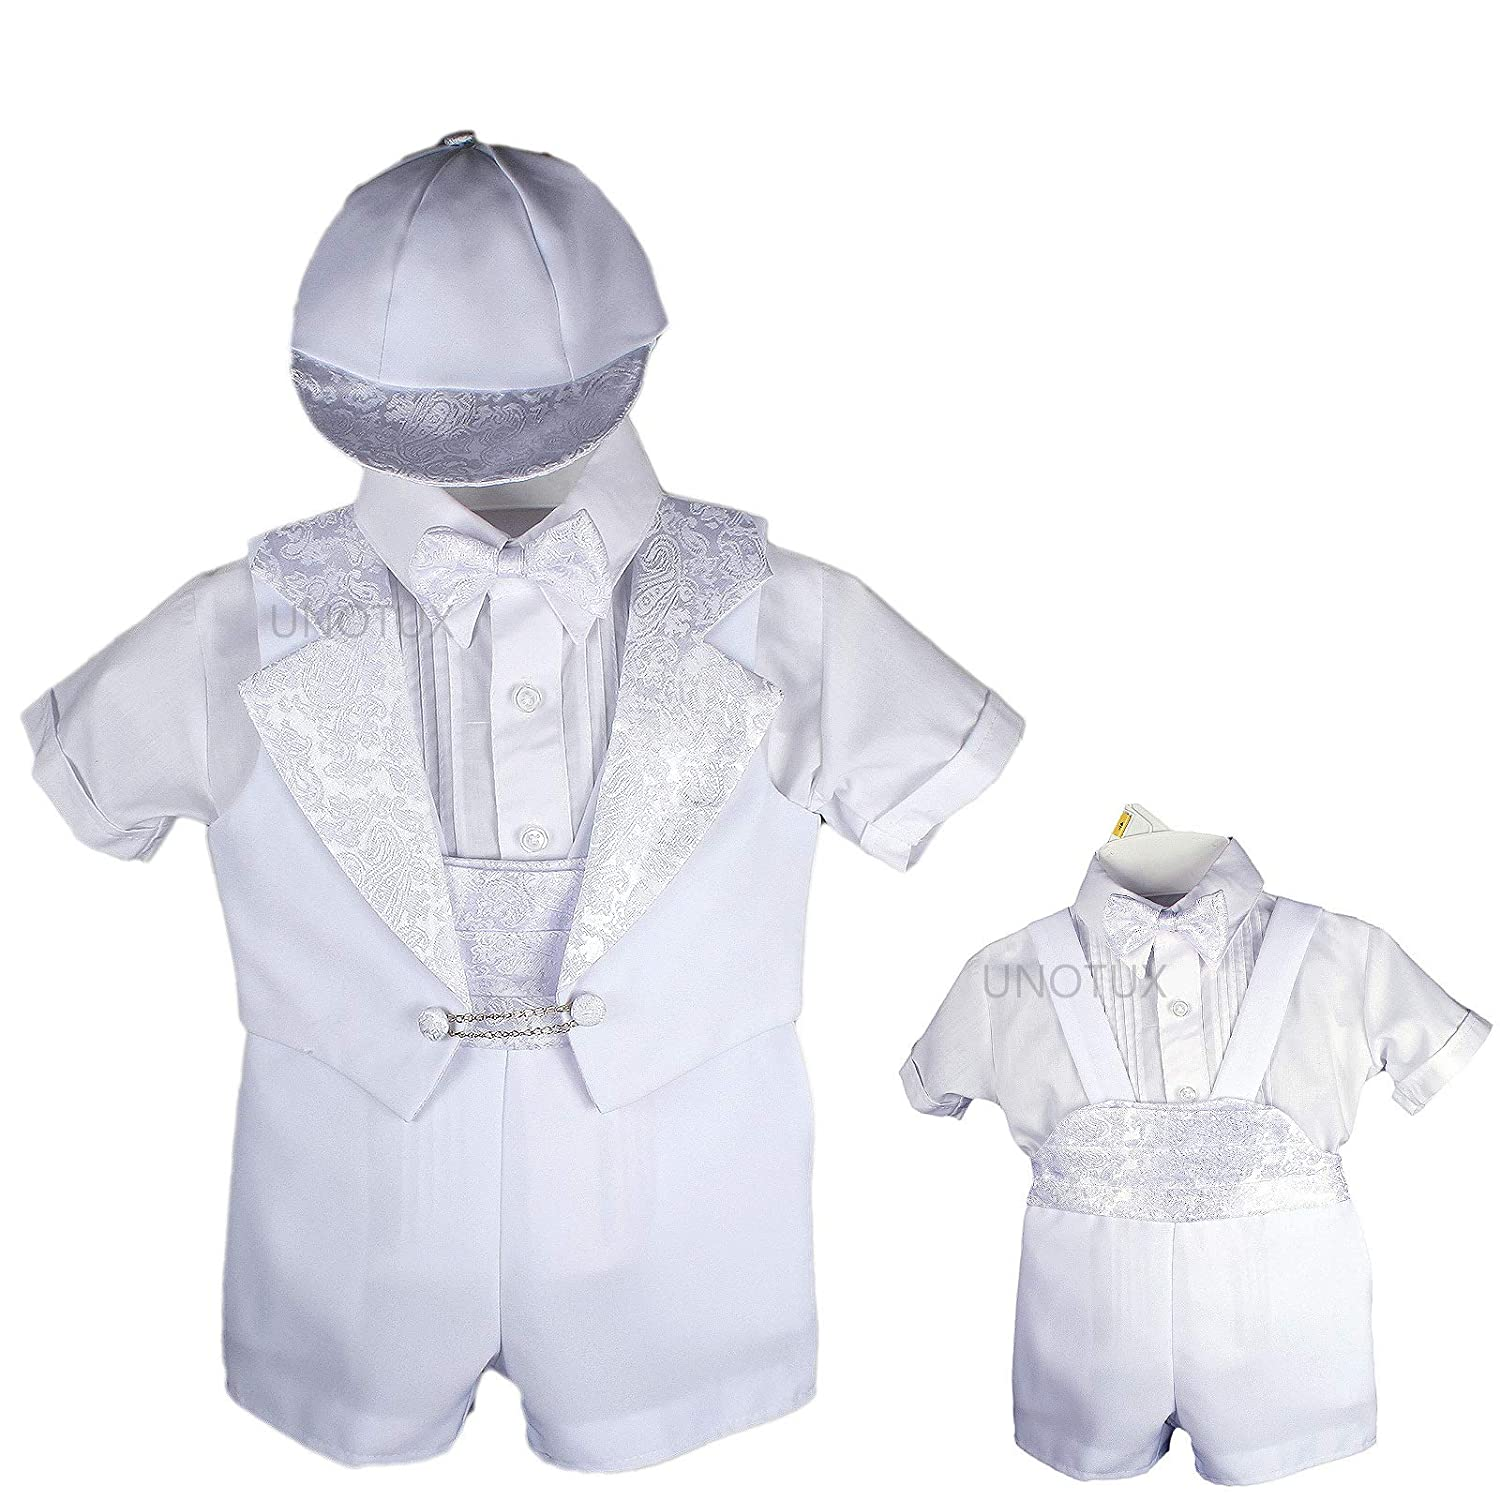 Baptism Christening Boy Formal Vest Shorts White Suit Gown Outfit Hat 0-5 (2:(6-12 Months))